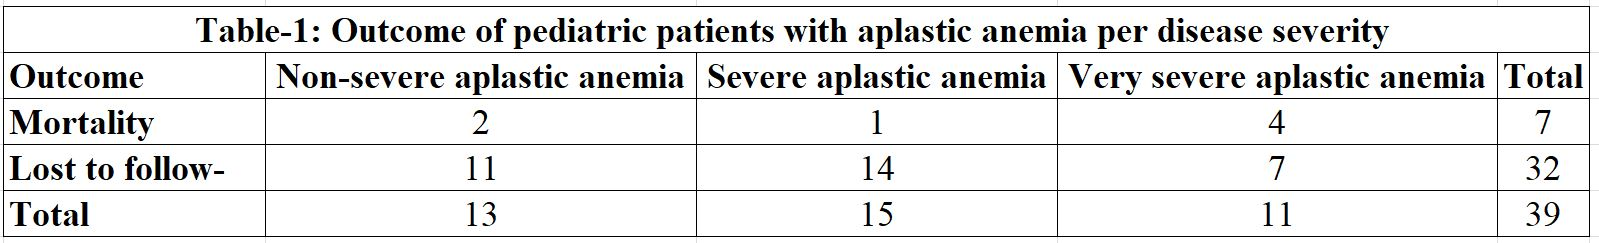 Clinical and Demographic Profile of Pediatric Patients with Aplastic Anemia Seen in the Philippine National Tertiary Hospital from 2006 to 2013